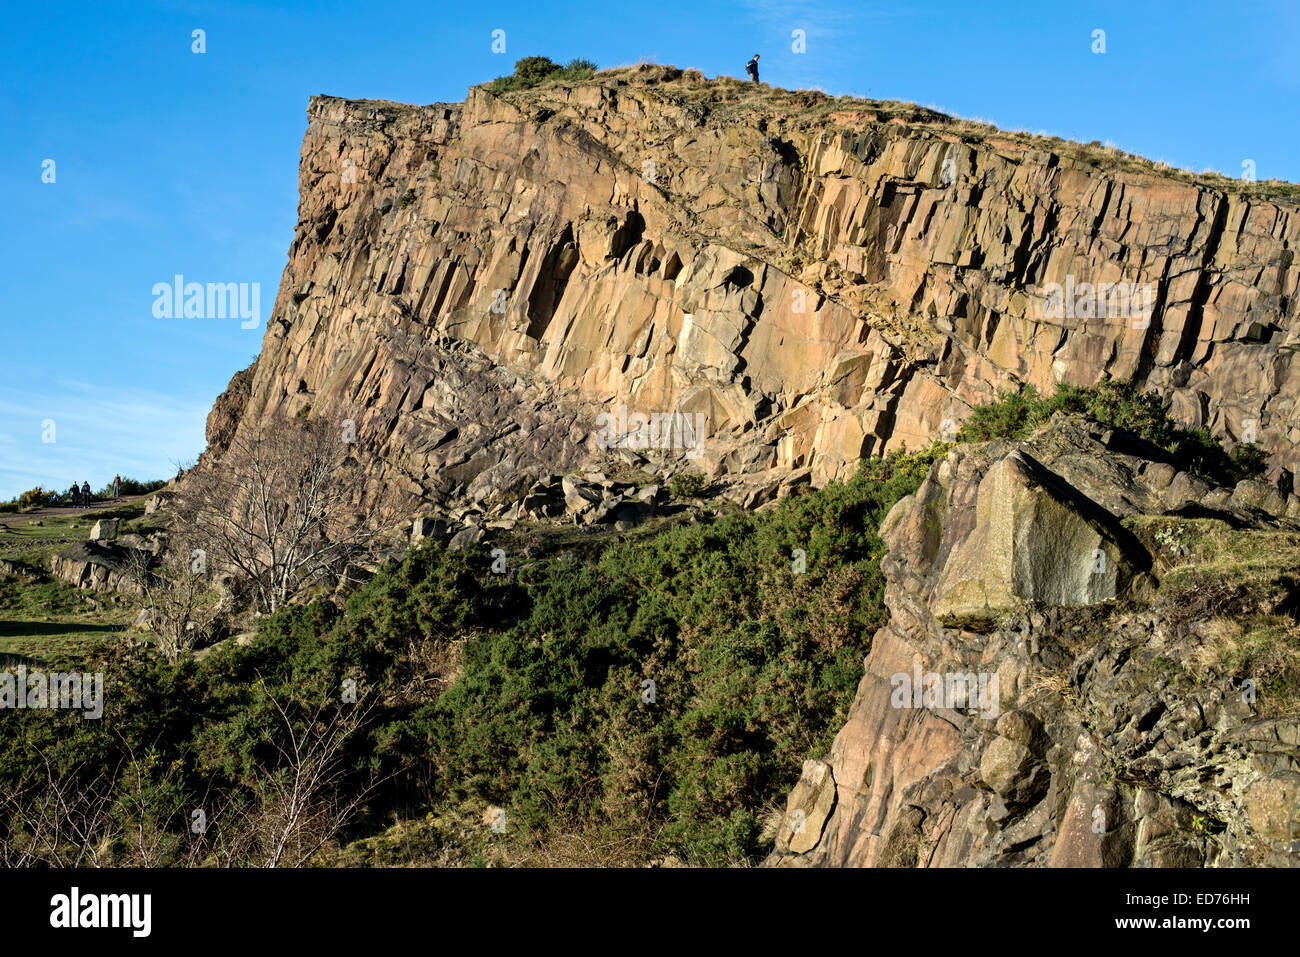 A view of Salisbury Crags from the Radical Road in Edinburgh's Holyrood Park. - Stock Image